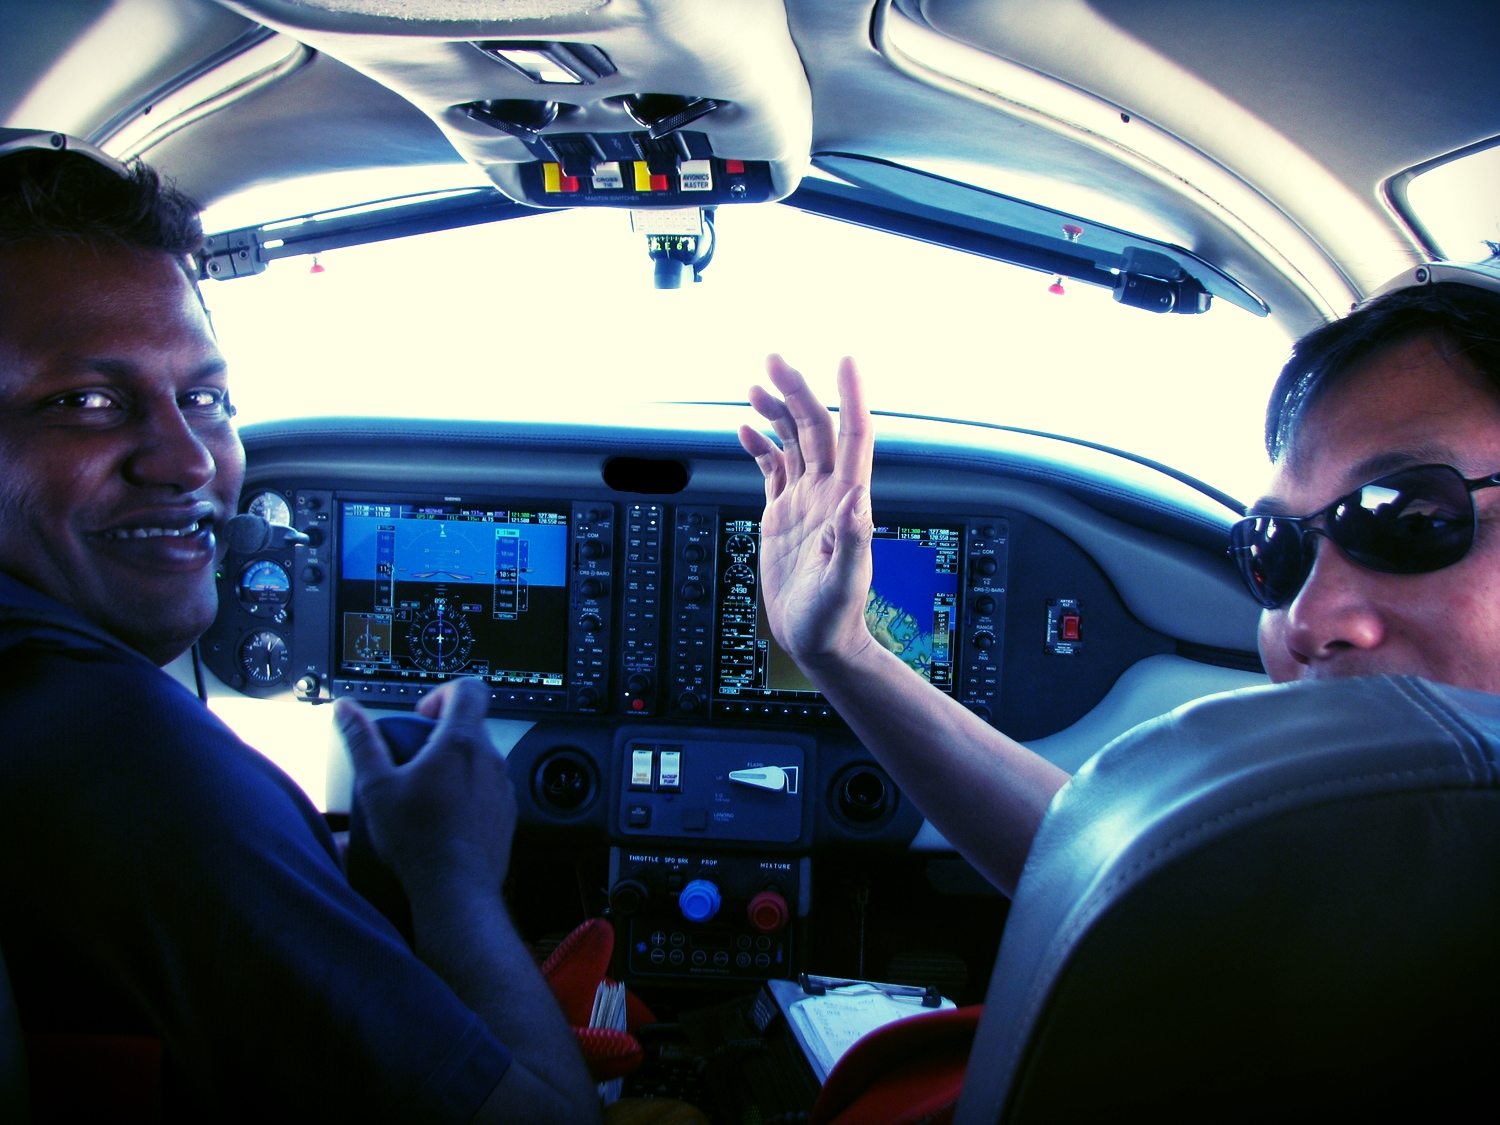 Learning disciplined, proficient and safe operations of advanced airplanes is often fun and rewarding at the same time.